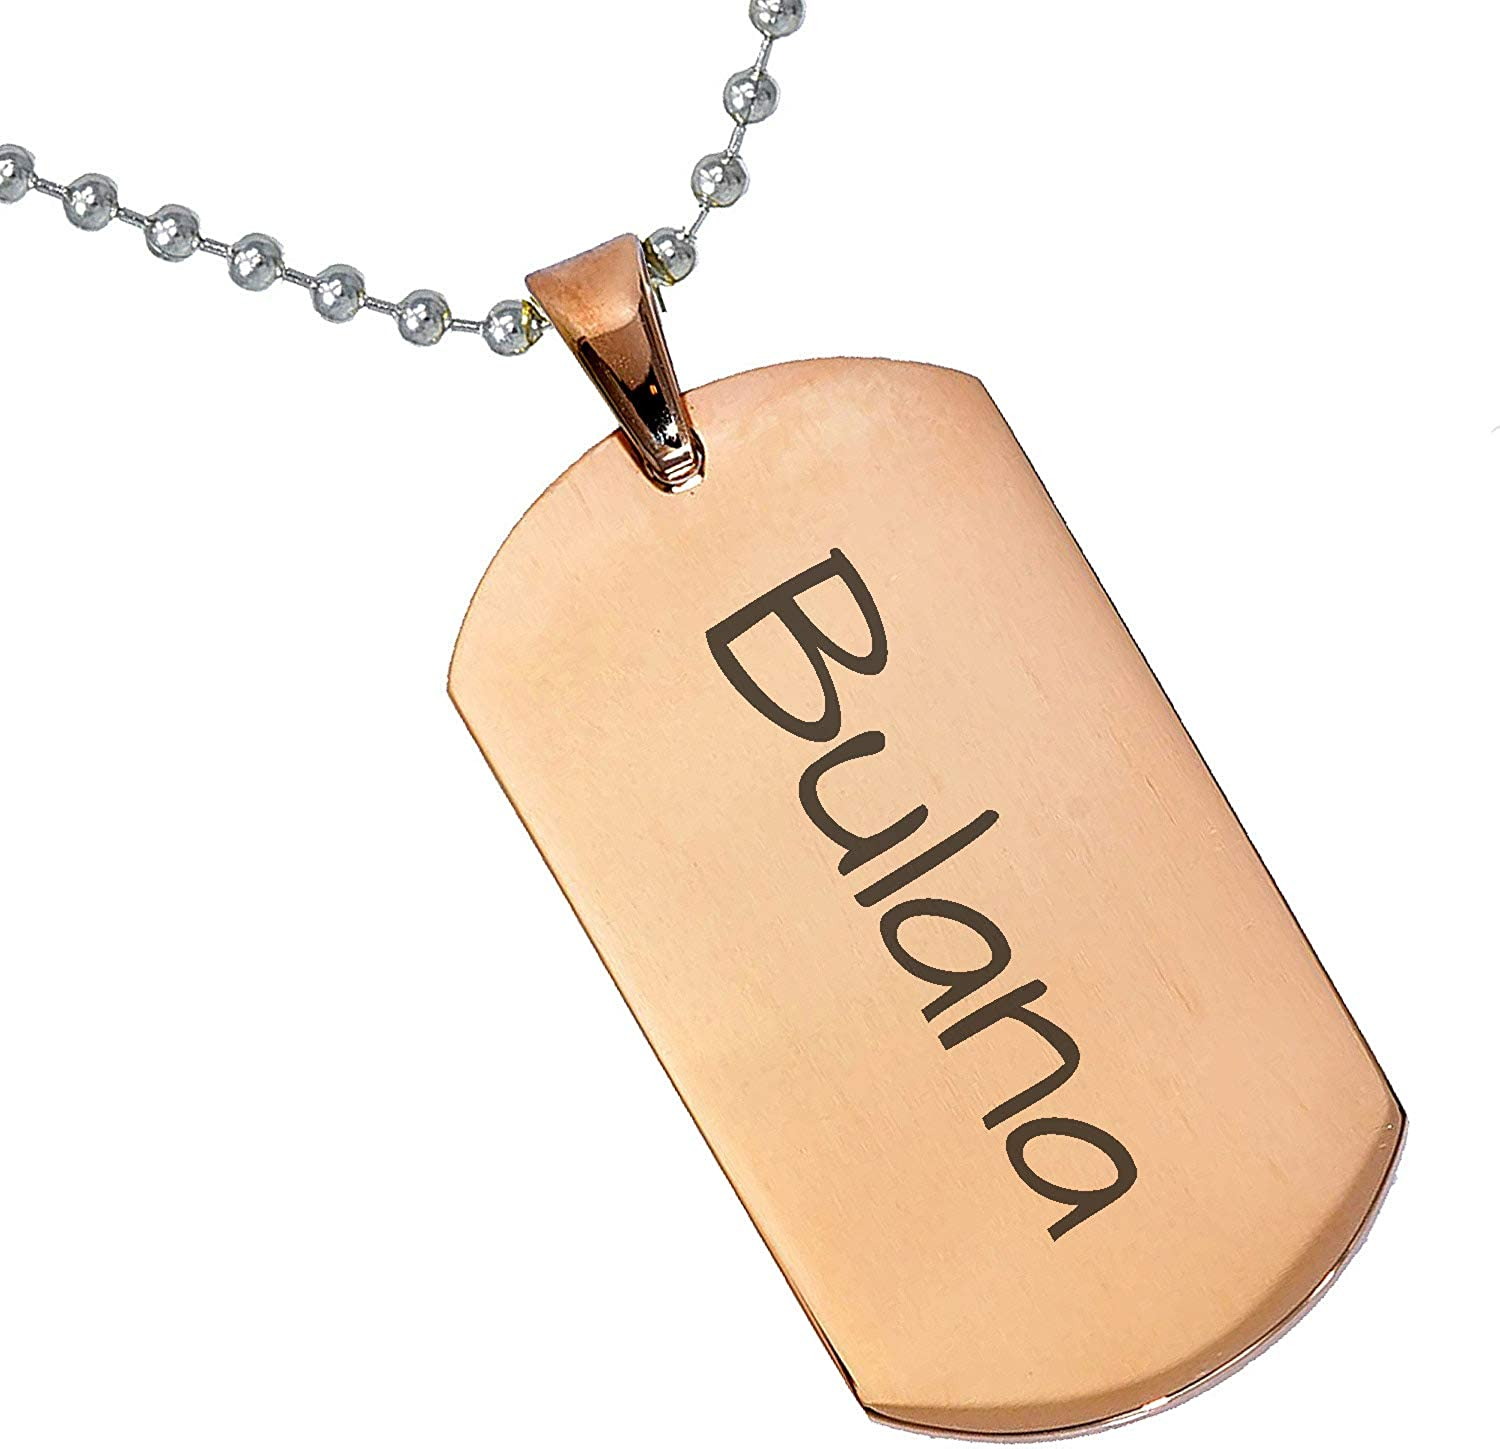 Stainless Steel Silver Gold Black Rose Gold Color Baby Name Bulana Engraved Personalized Gifts For Son Daughter Boyfriend Girlfriend Initial Customizable Pendant Necklace Dog Tags 24 Ball Chain